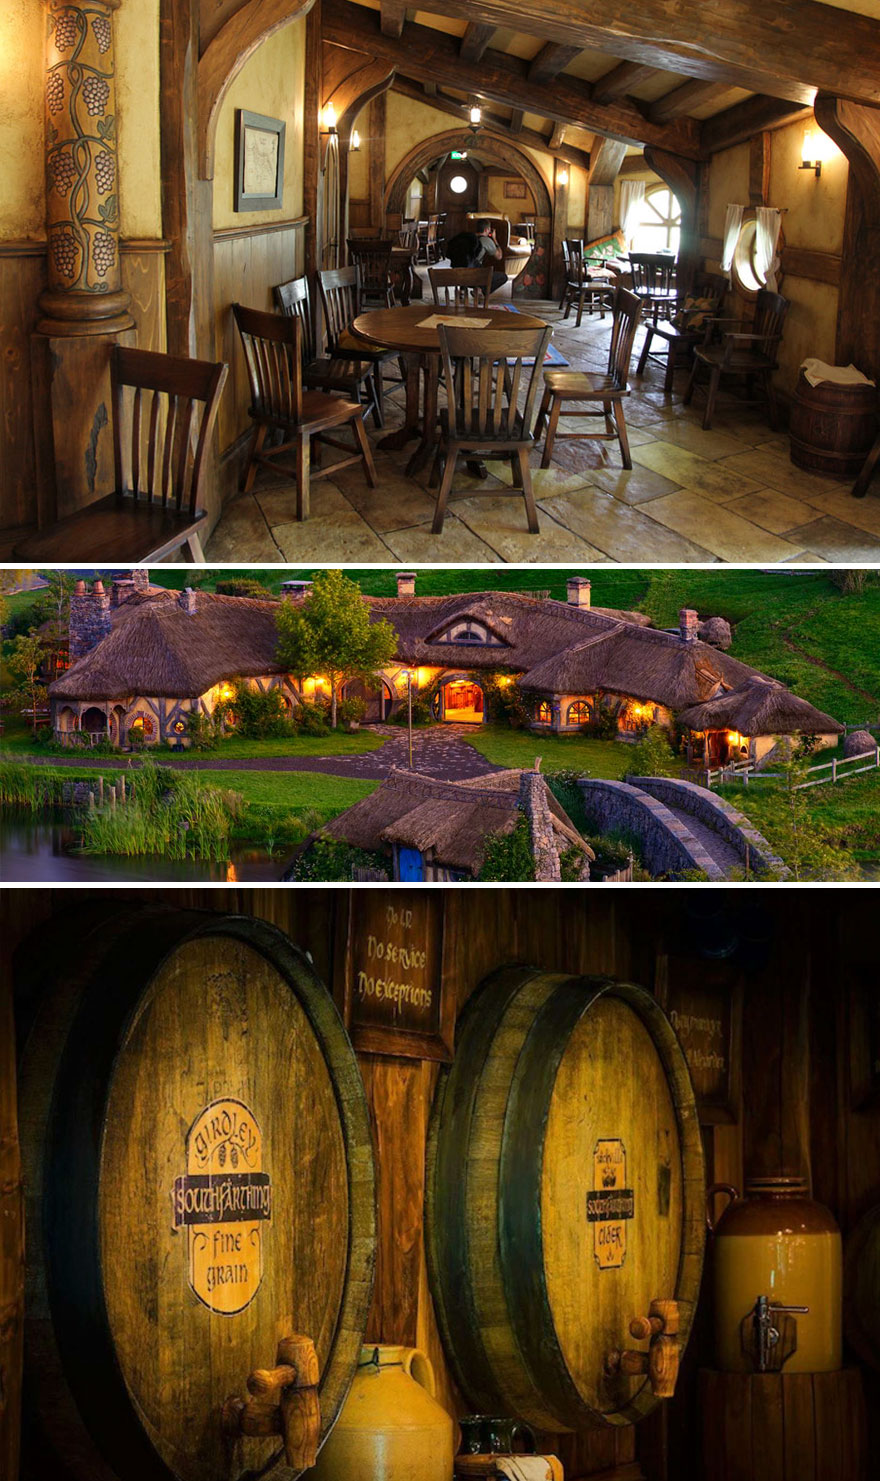 35 Of The World's Most Amazing Restaurants To Eat In Before You Die - 'A Place To Drink, A Place To Meet, A Place To Rest Your Hairy Feet.' The Green Dragon Pub In Hobbiton (New Zealand) Is A Perfect Place For A Real LOTR Fan